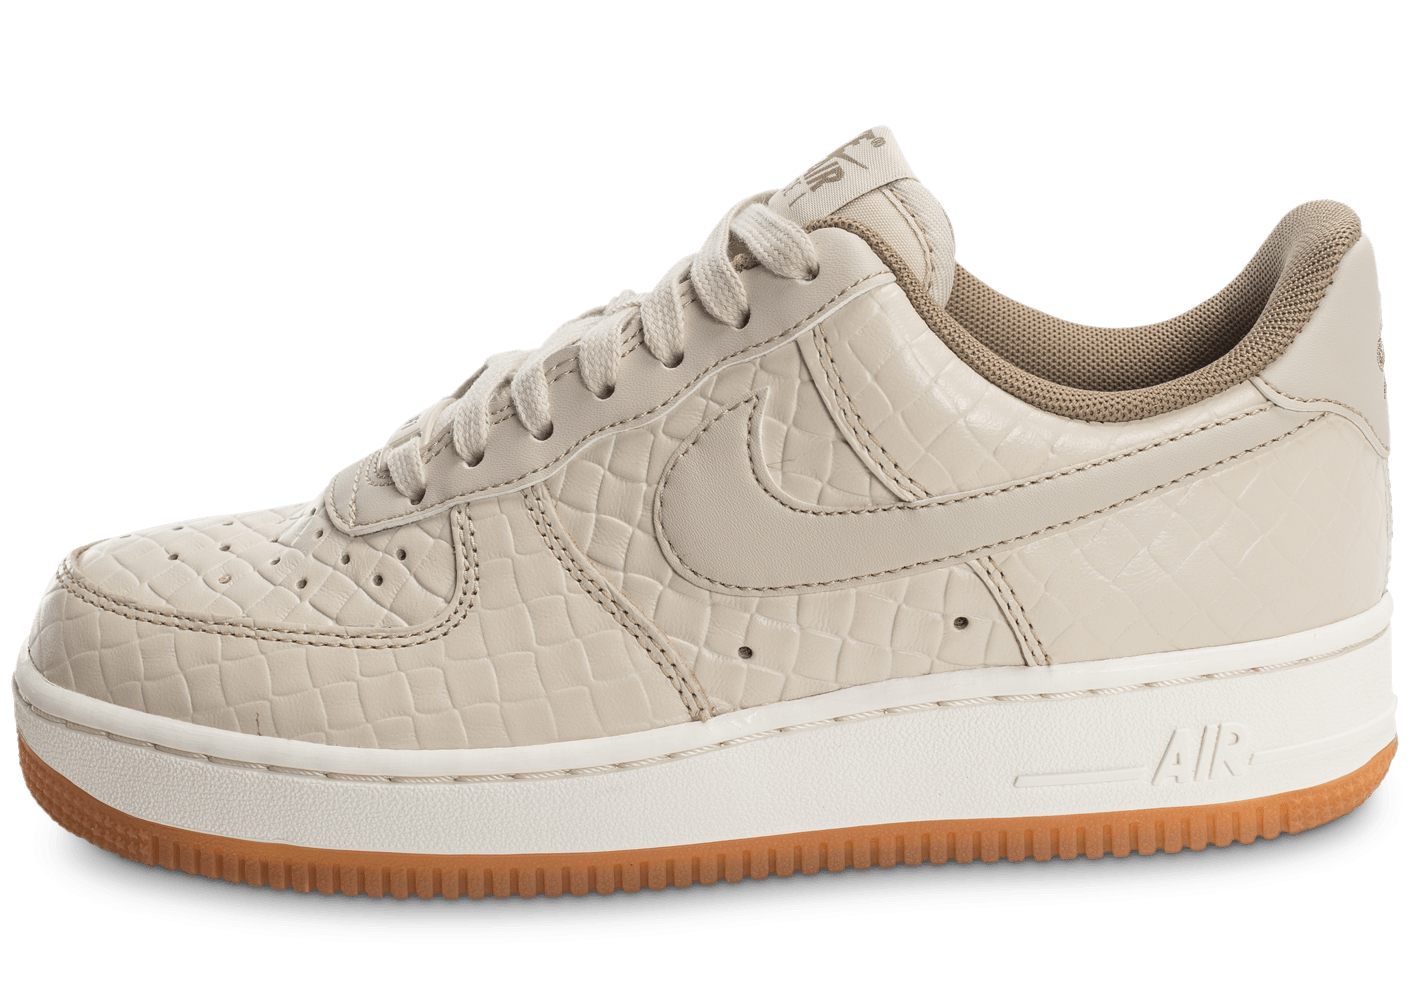 nike air force 1 femme grise